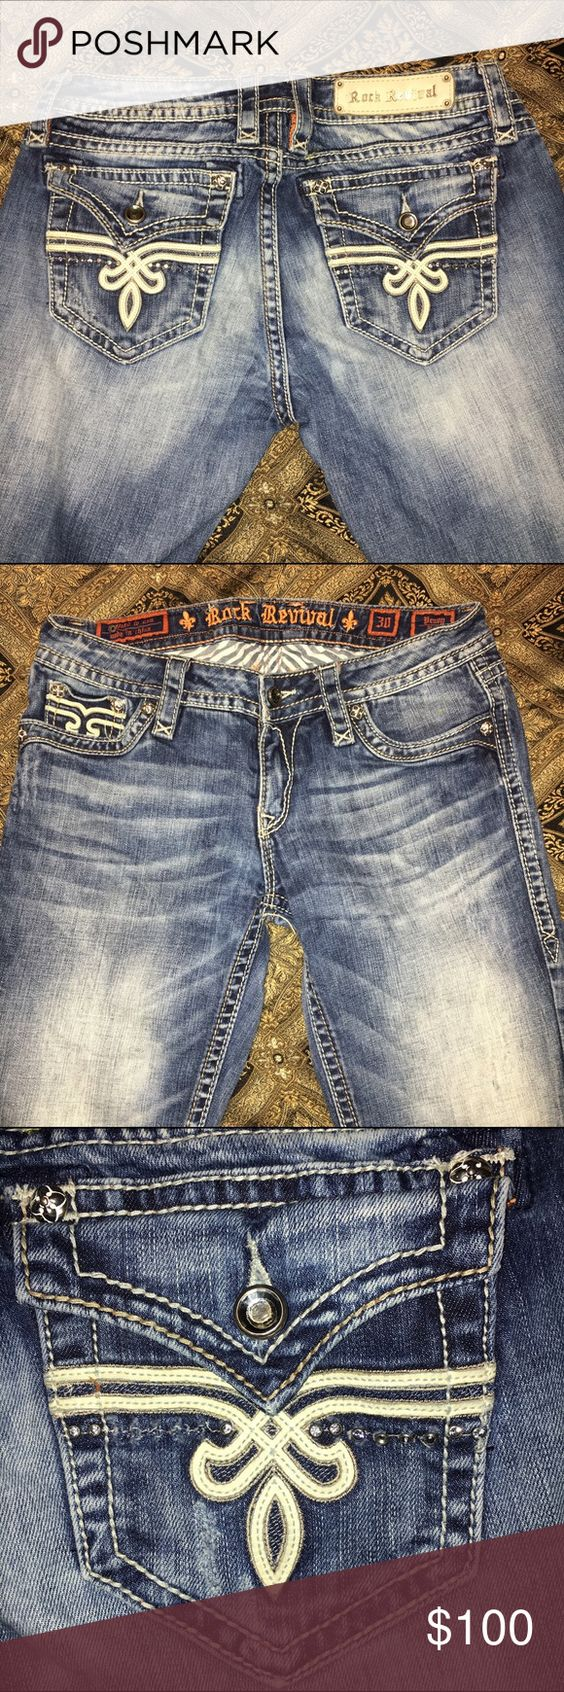 Penny bootcut rock revival jeans. Bling detailed pockets, some rhinestones are missing it's barely noticeable. {Selling for a friend, this is not my size, please don't ask for me to model them} Rock Revival Jeans Boot Cut